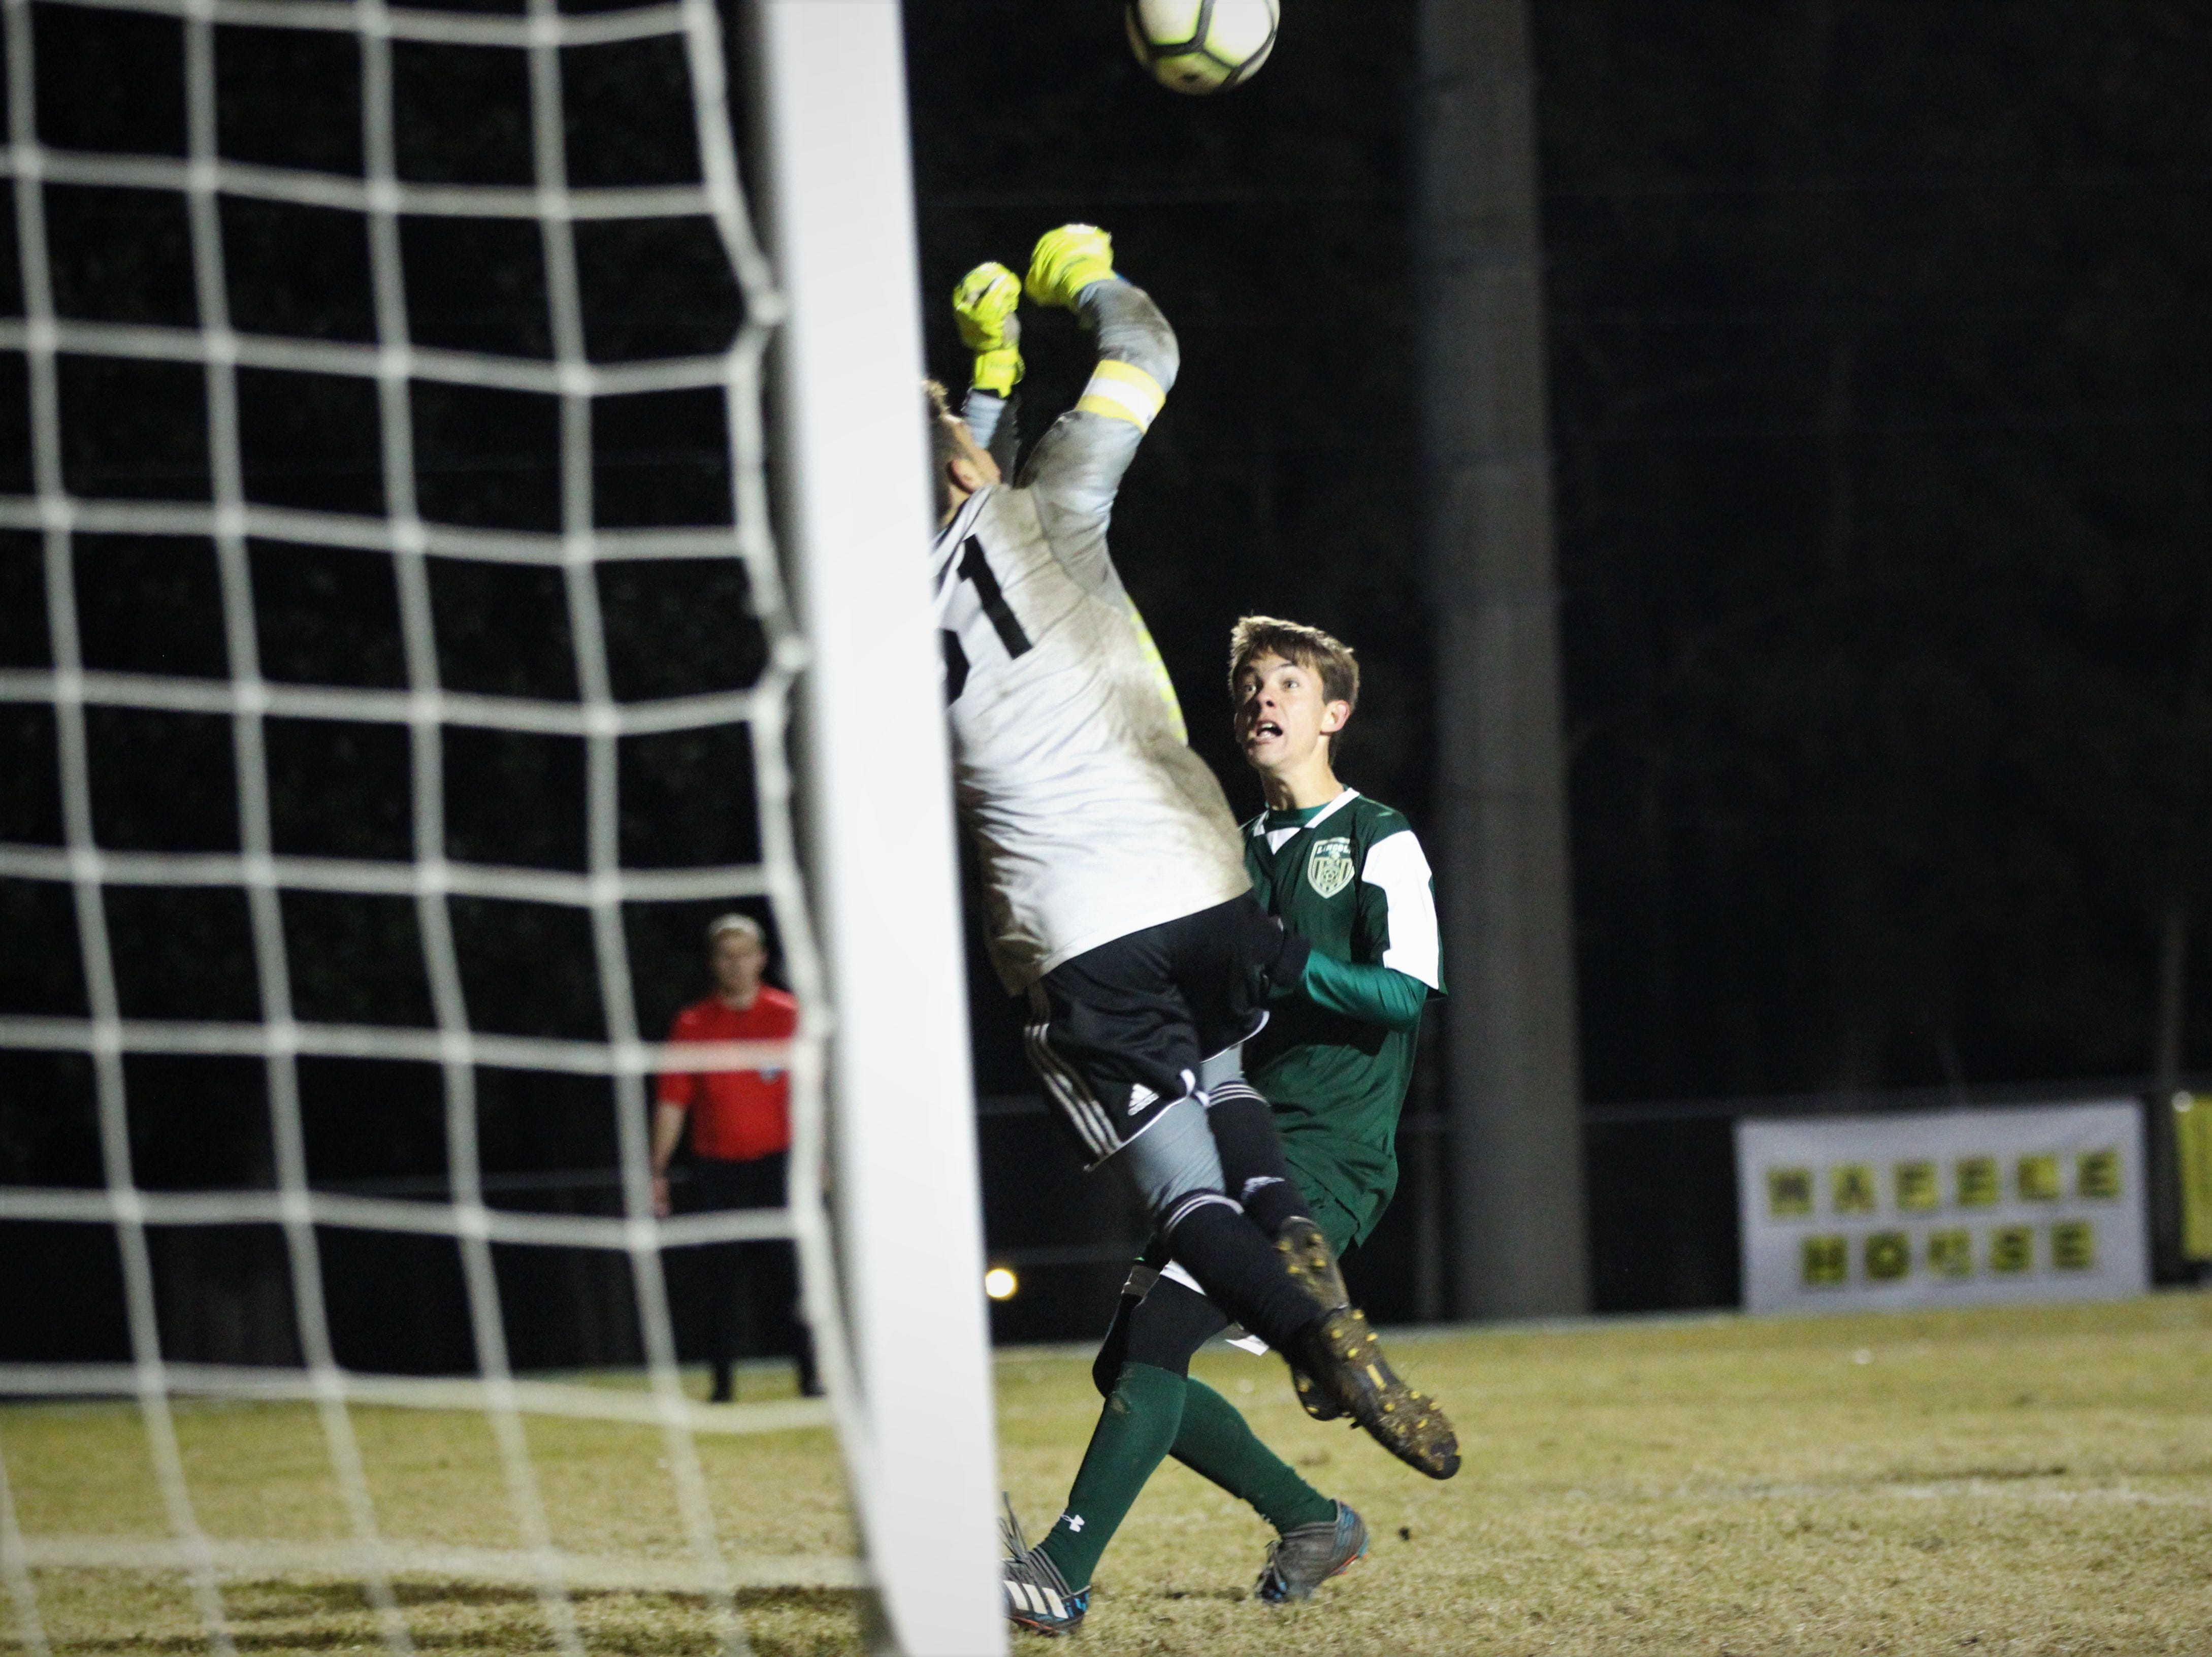 Chiles keeper Abraheim Darwish goes for a save in the final minutes as Chiles' boys soccer team beat Lincoln 1-0 in a District 2-4A semifinal on Jan. 30, 2019.